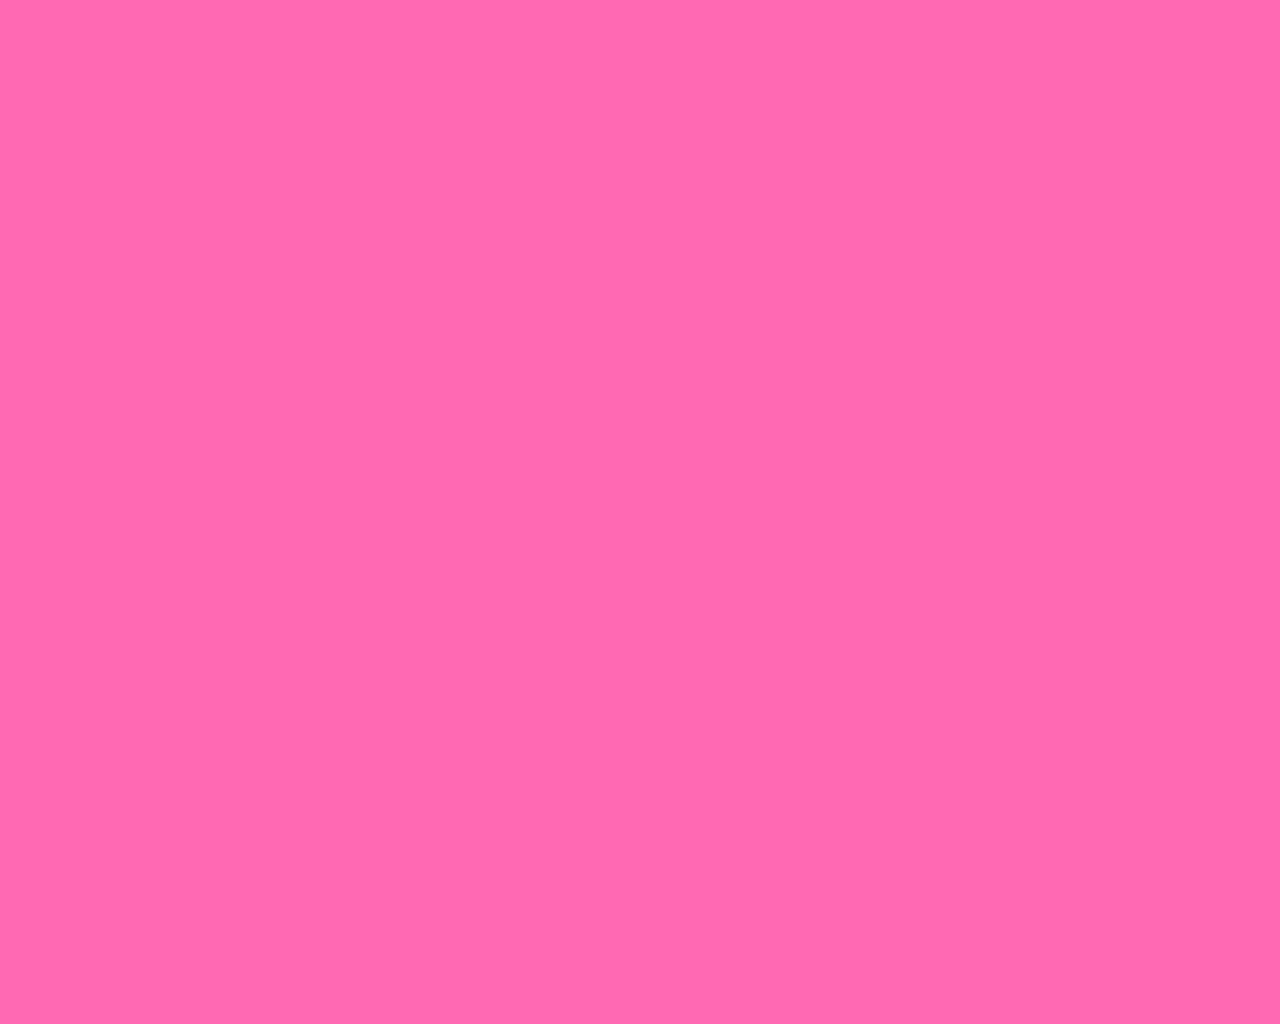 Privacy Policy >> 1280x1024 Hot Pink Solid Color Background